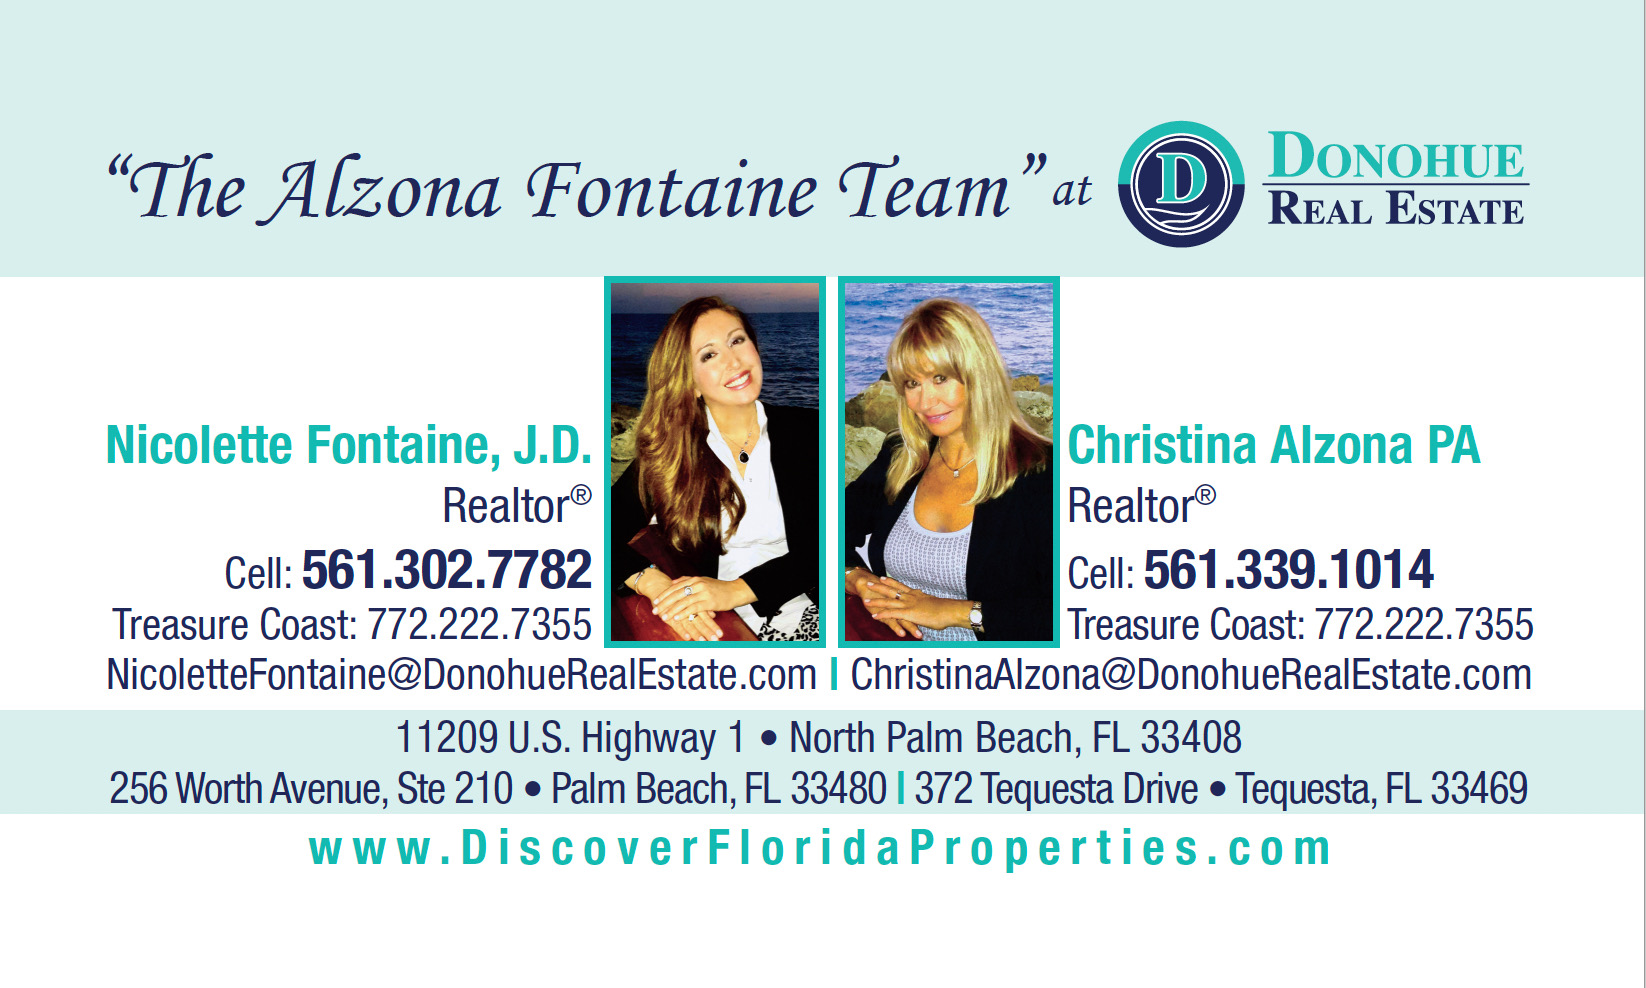 "Nicolette Fontaine & Christina Alzona – Realtors at Donohue Real Estate – Realtor at Future Home Realty 11209 U.S. Highway 1, North Palm Beach, FL 33408 256 Worth Avenue, Ste. 210, Palm Beach, FL 33480 372 Tequesta Dr., Tequesta, FL 33469 Now may be the best time to make your Next Move! Get two positive, helpful real estate professionals, Christina Alzona PA with 20 years experience and Nicolette Fontaine J.D. with 12 years experience, that will guide your every step in Buying or Selling a Home: Trusted resource for answers about the process Innovative marketing strategies Expertise about neighborhood features Ability to target home searches Strong negotiation skills Support through the closing and beyond. ""The Alzona Fontaine Team"" at Donohue Real Estate LLC are Polish and Italian speaking Licensed Florida Real Estate Agents, who sell properties throughout the Palm Beaches and The Treasure Coast, Florida. Christina is a native of Warsaw, Poland and has worked with Polish and European Real Estate Clients; Nicolette has worked with International Buyers and Investors. Specializing in Waterfront Real Estate, Luxury Homes, Oceanfront and Intracoastal Condos, Golfcourse Properties, Equestrian/Farm Properties, Residential Resale, New Home Construction & Commercial Real Estate throughout Palm Beach County, Martin County and St Lucie County, Southeast Florida. - ""The Alzona Fontaine Team"" oferuje kompleksową obsługę klienta w obrocie nieruchomościami (kupno i sprzedaż) w Palm Beach County, Martin County and St Lucie County na południowo-wschodnim wybrzeżu Florydy. Oprócz angielskiego, Christina i Nicolette mówią biegle po polsku i włosku. Christina pochodzi z Warszawy i ma ponad 20-letnie doświadczenie w pośrednictwie obrotu nieruchomościami. Nicolette ma ponad 12-letnie doświadczenie na rynku nieruchomości. Christina i Nicolette specjalizują się między innymi w nieruchomościach luksusowych nad wodą, przy plaży i na polach golfowych. – Nicolette: (561) 302-7782 Christina: (561) 339-1014 Treasure Coast: (772) 222-7355 – www.DiscoverFloridaProperties.com Facebook.com/DiscoverFloridaProperties –"